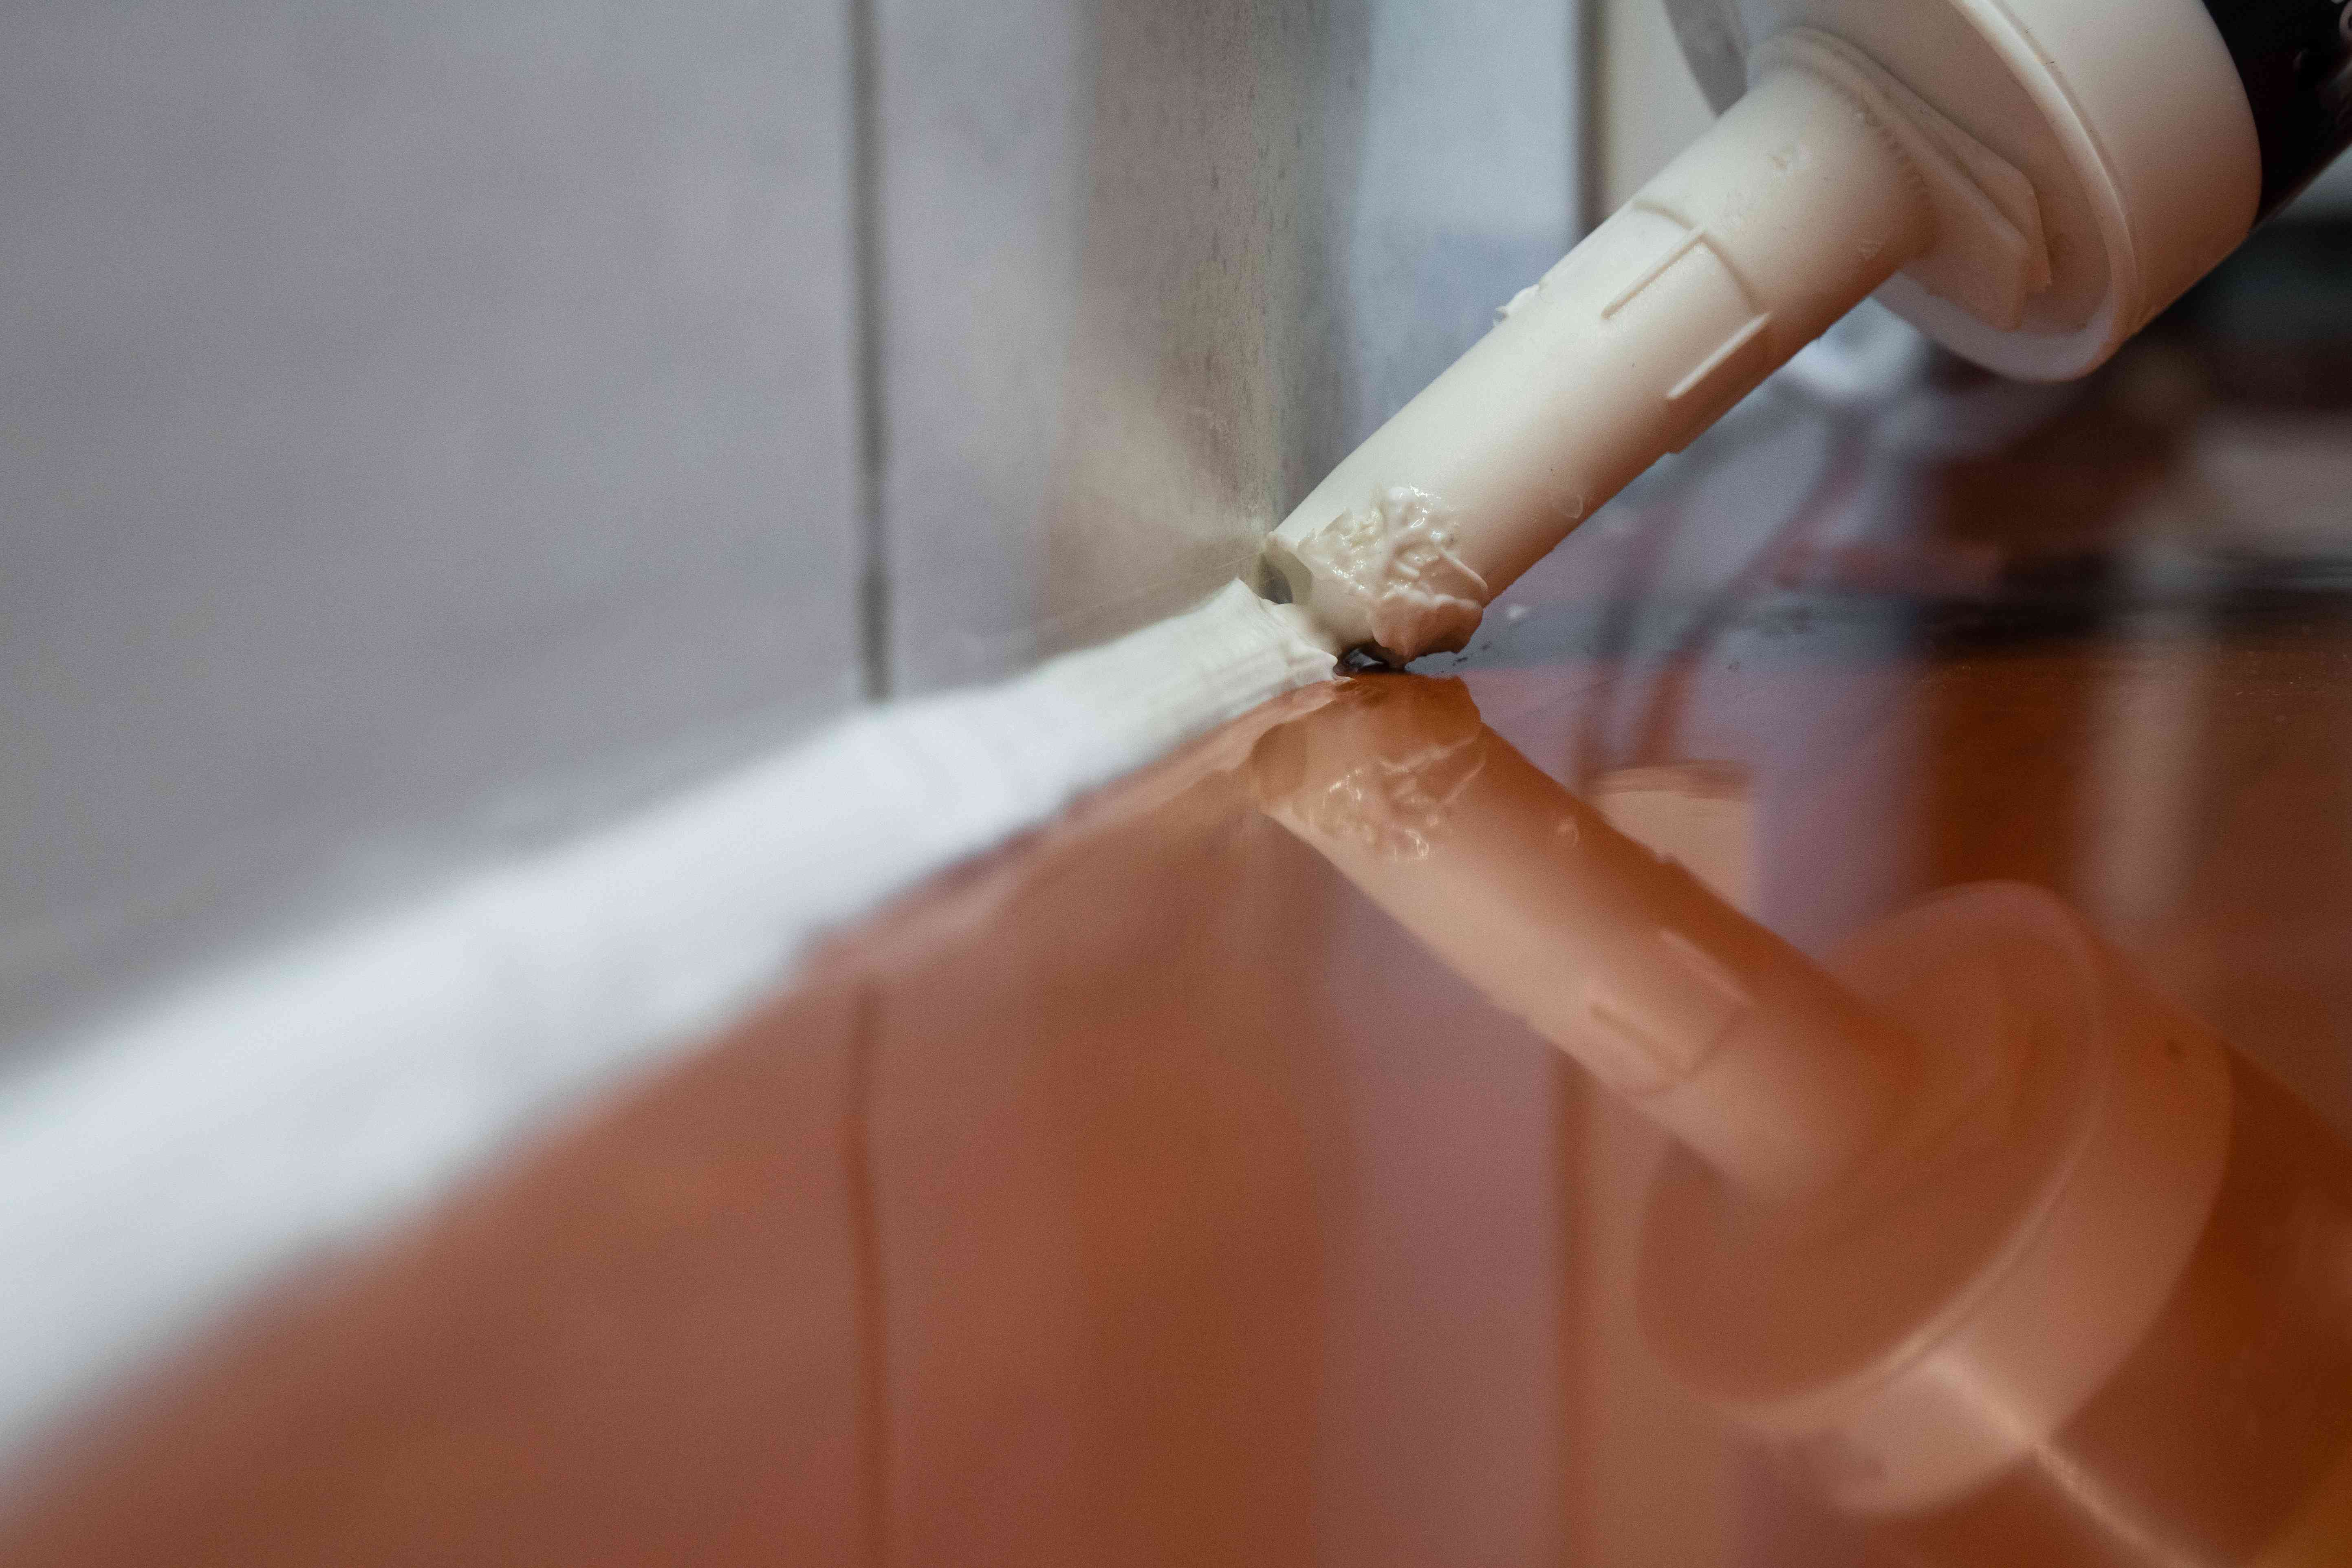 macro close up shot of caulking gun being squeezed in cracks of tile grout